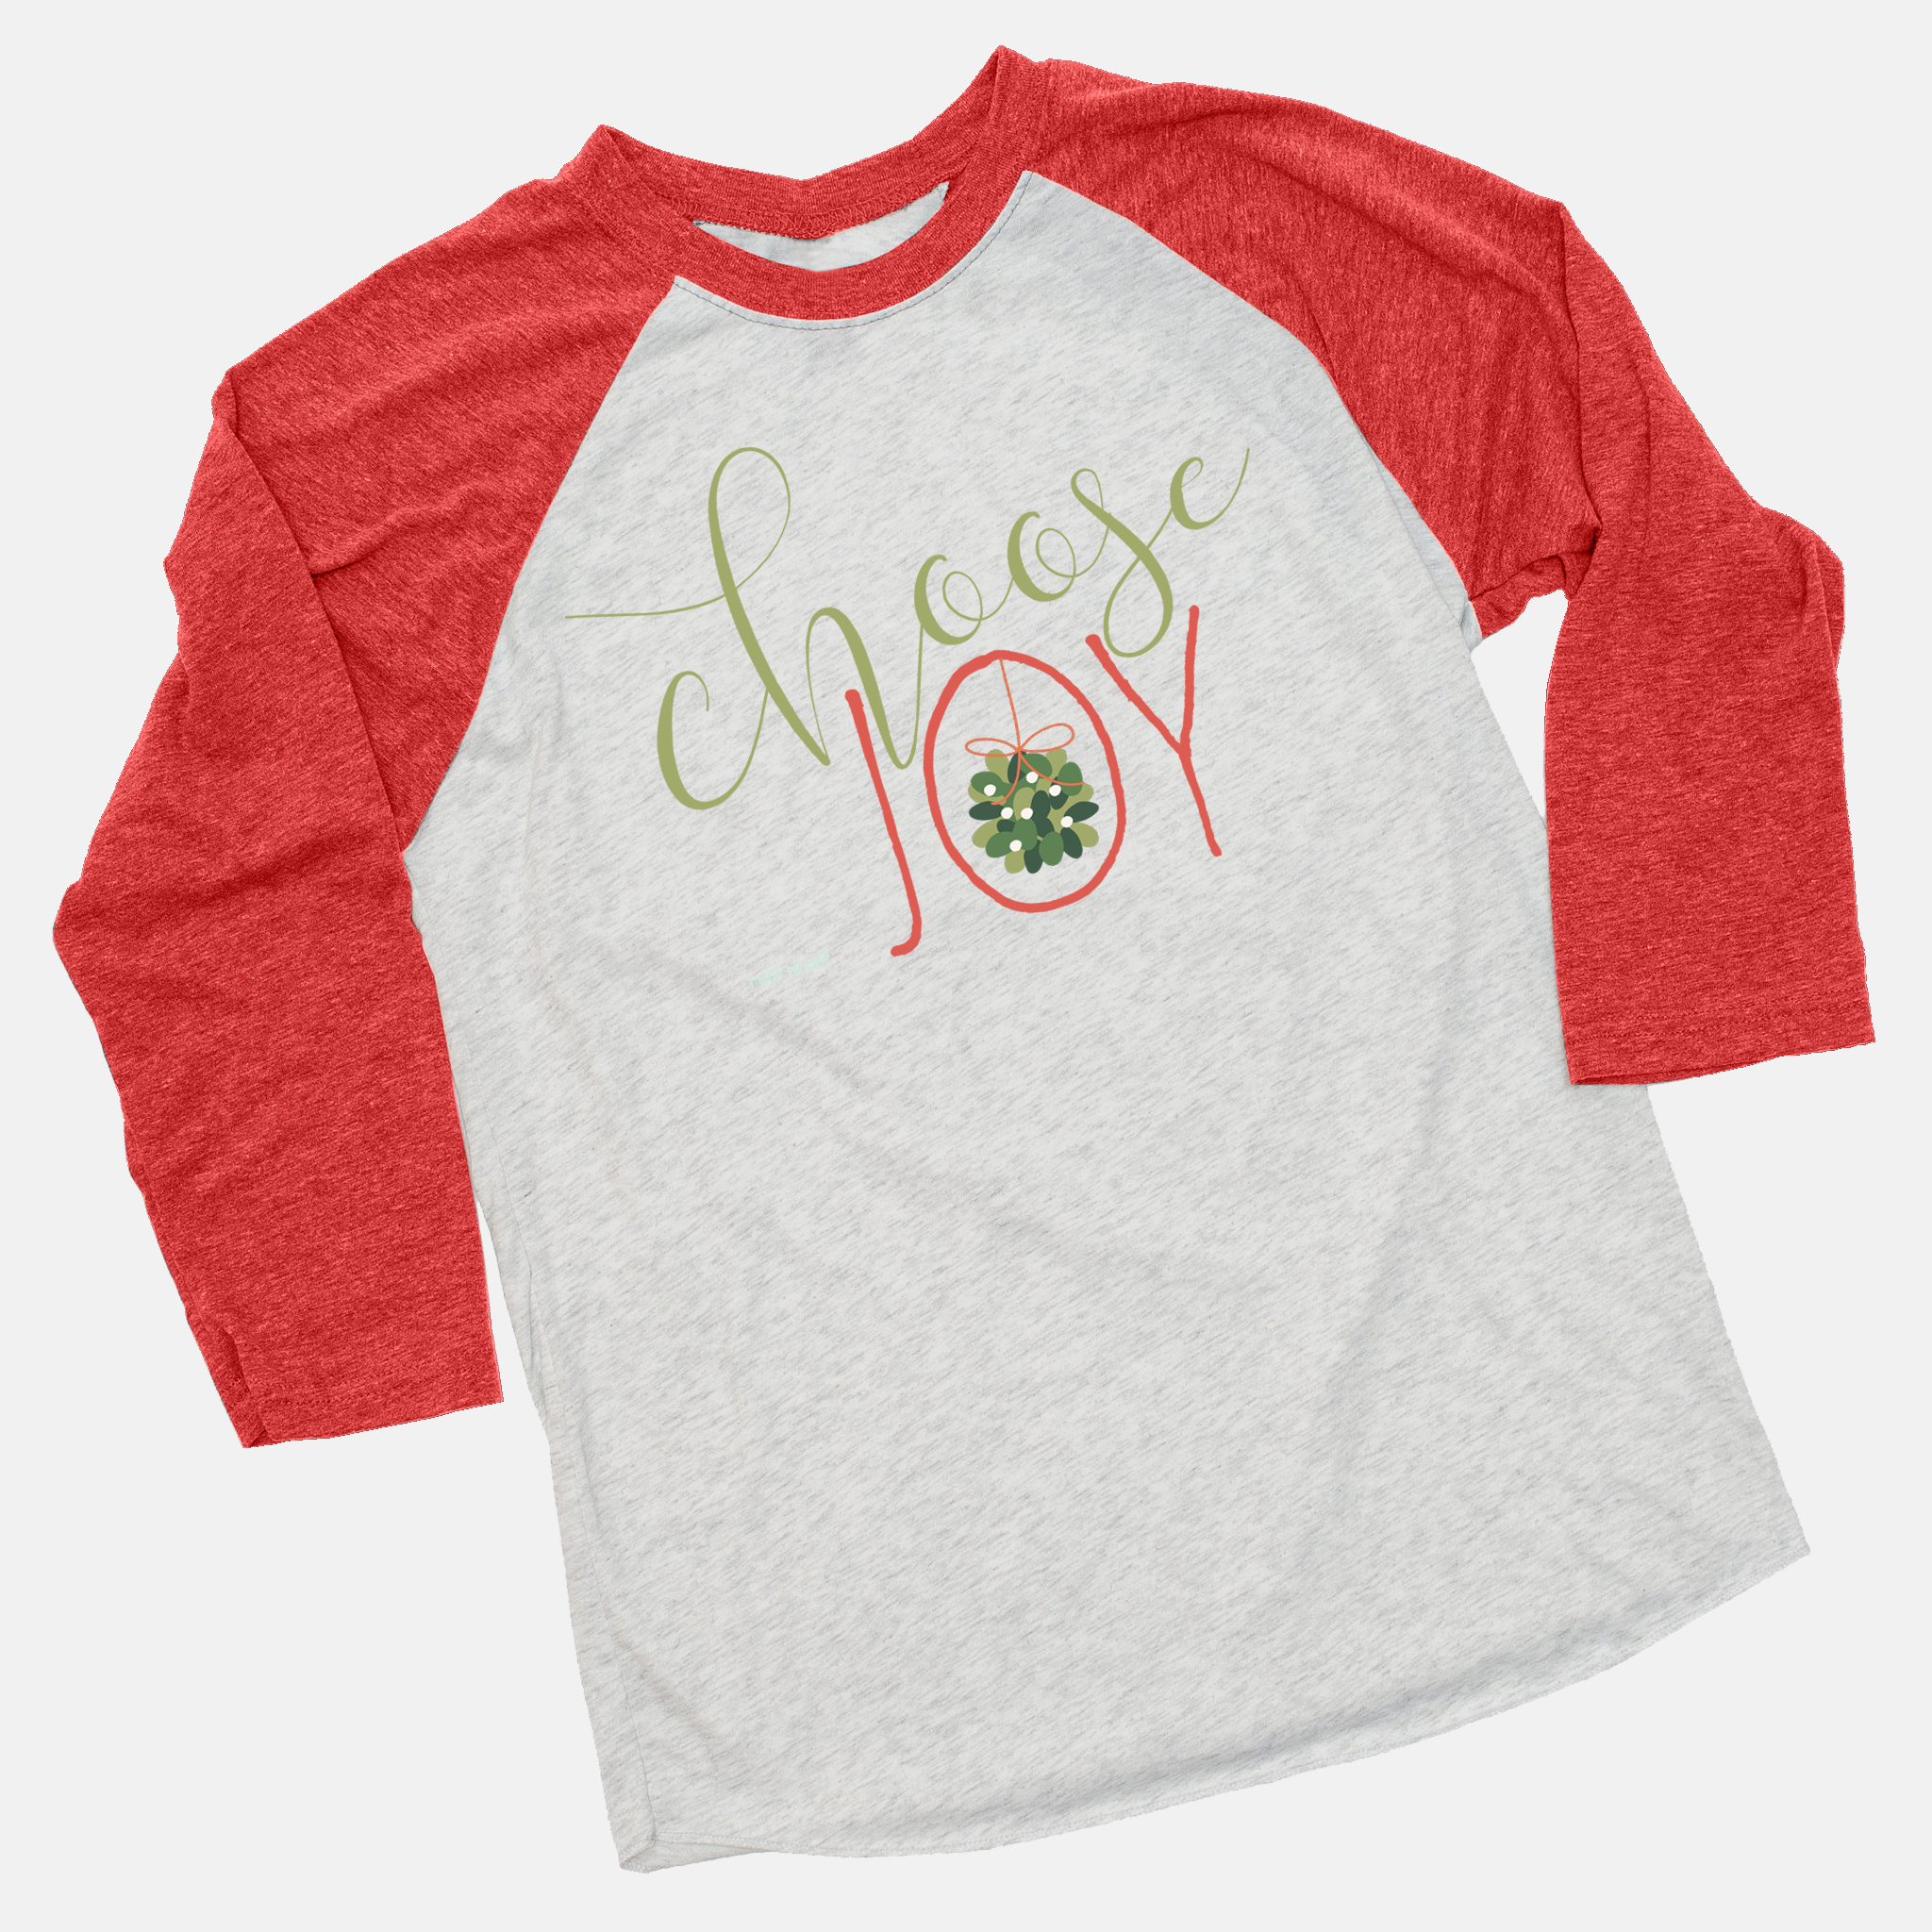 click on tee to grab yours today! They are the SOFTEST and comfiest tees we have ever had in the RDP shoppe!!